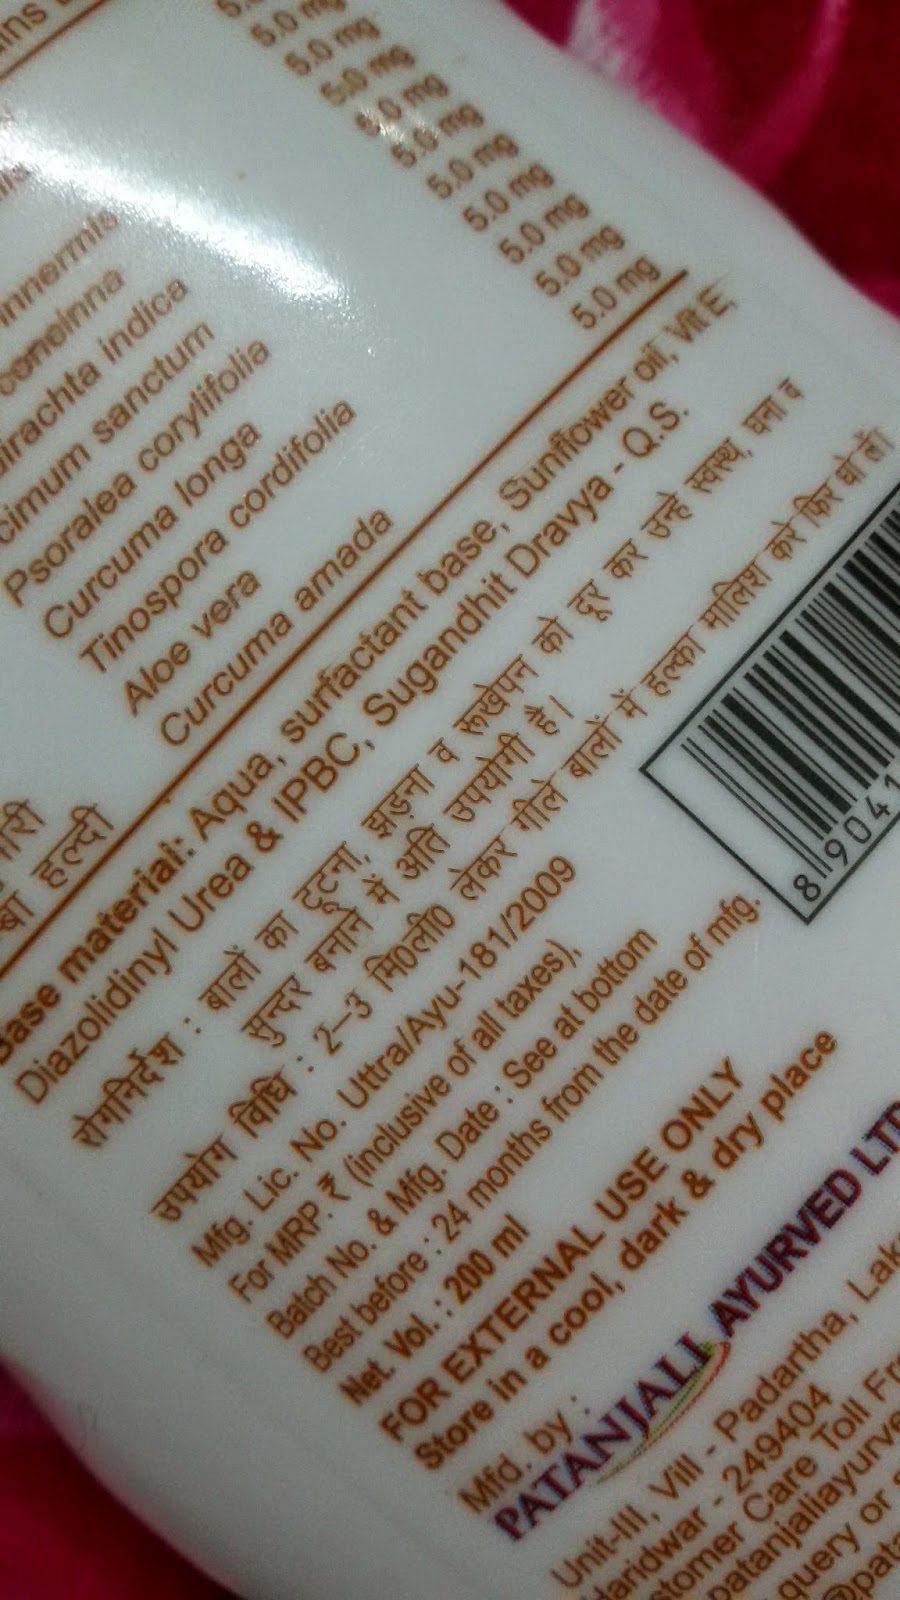 Patanjali Kesh Kanti Natural Hair Cleanser product claims and how to use